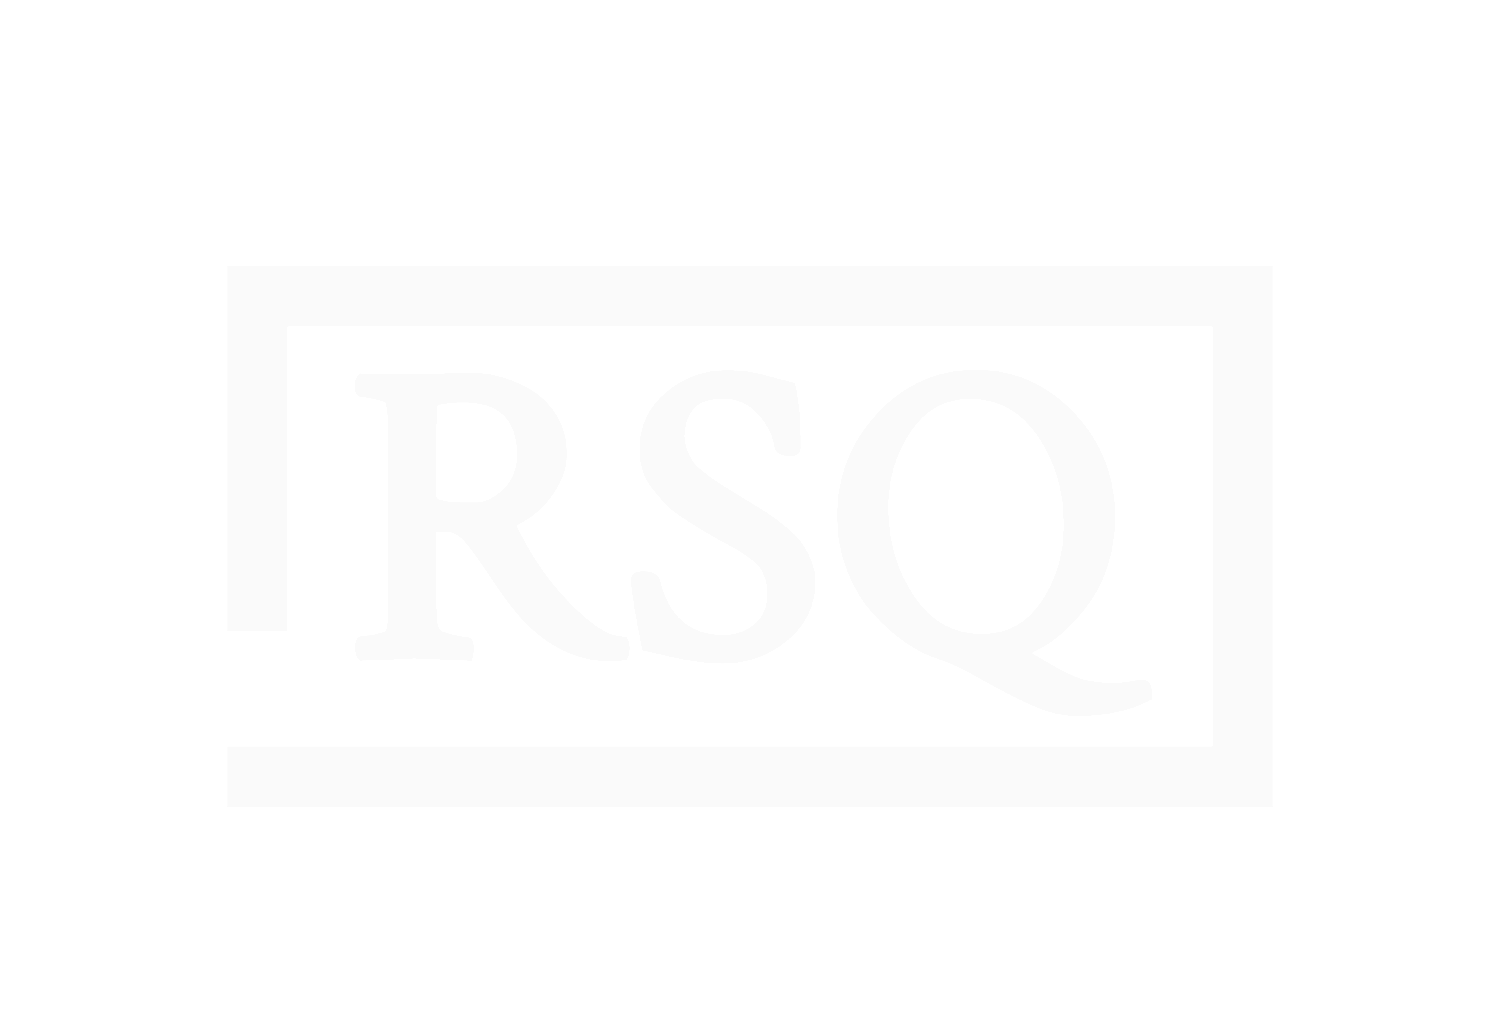 Rosco String Quartet